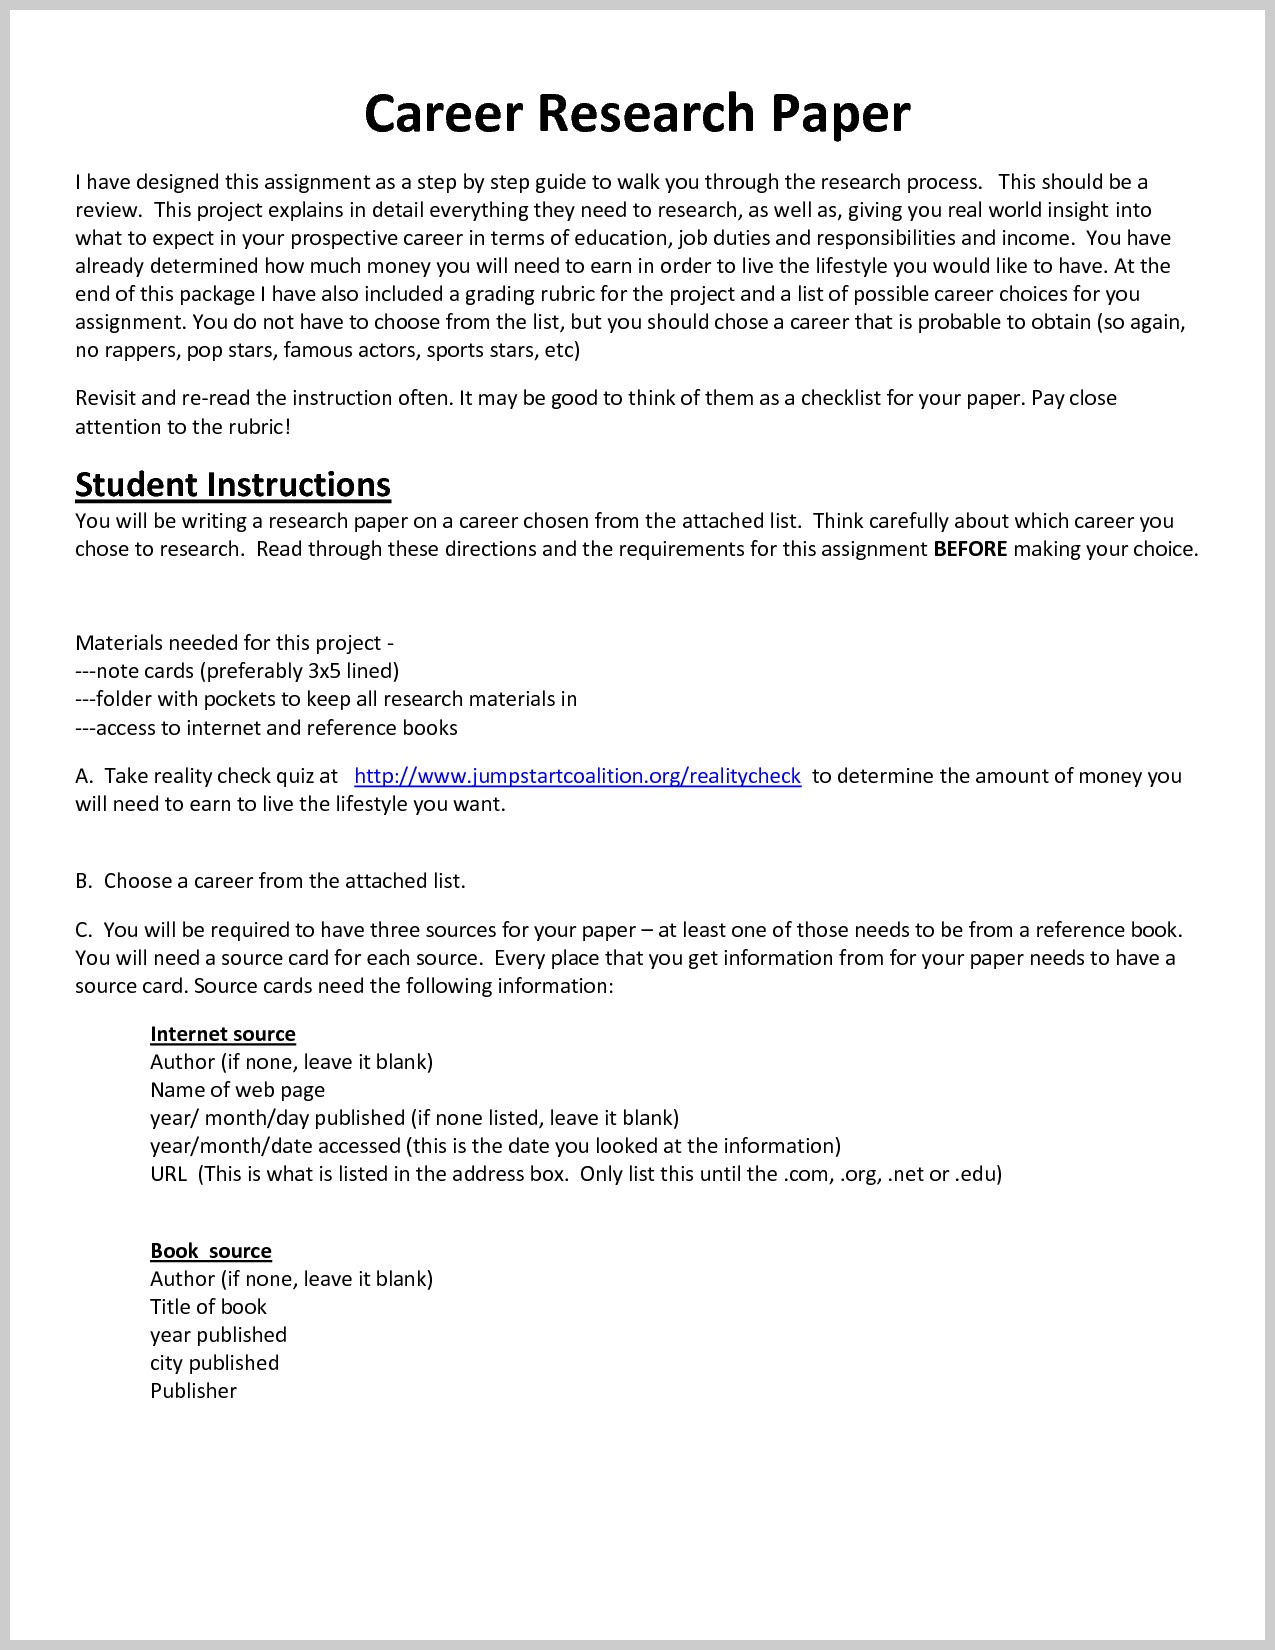 001 Research Paper Write Career Need Help Writing I An Essay Wondrous Rubric Full